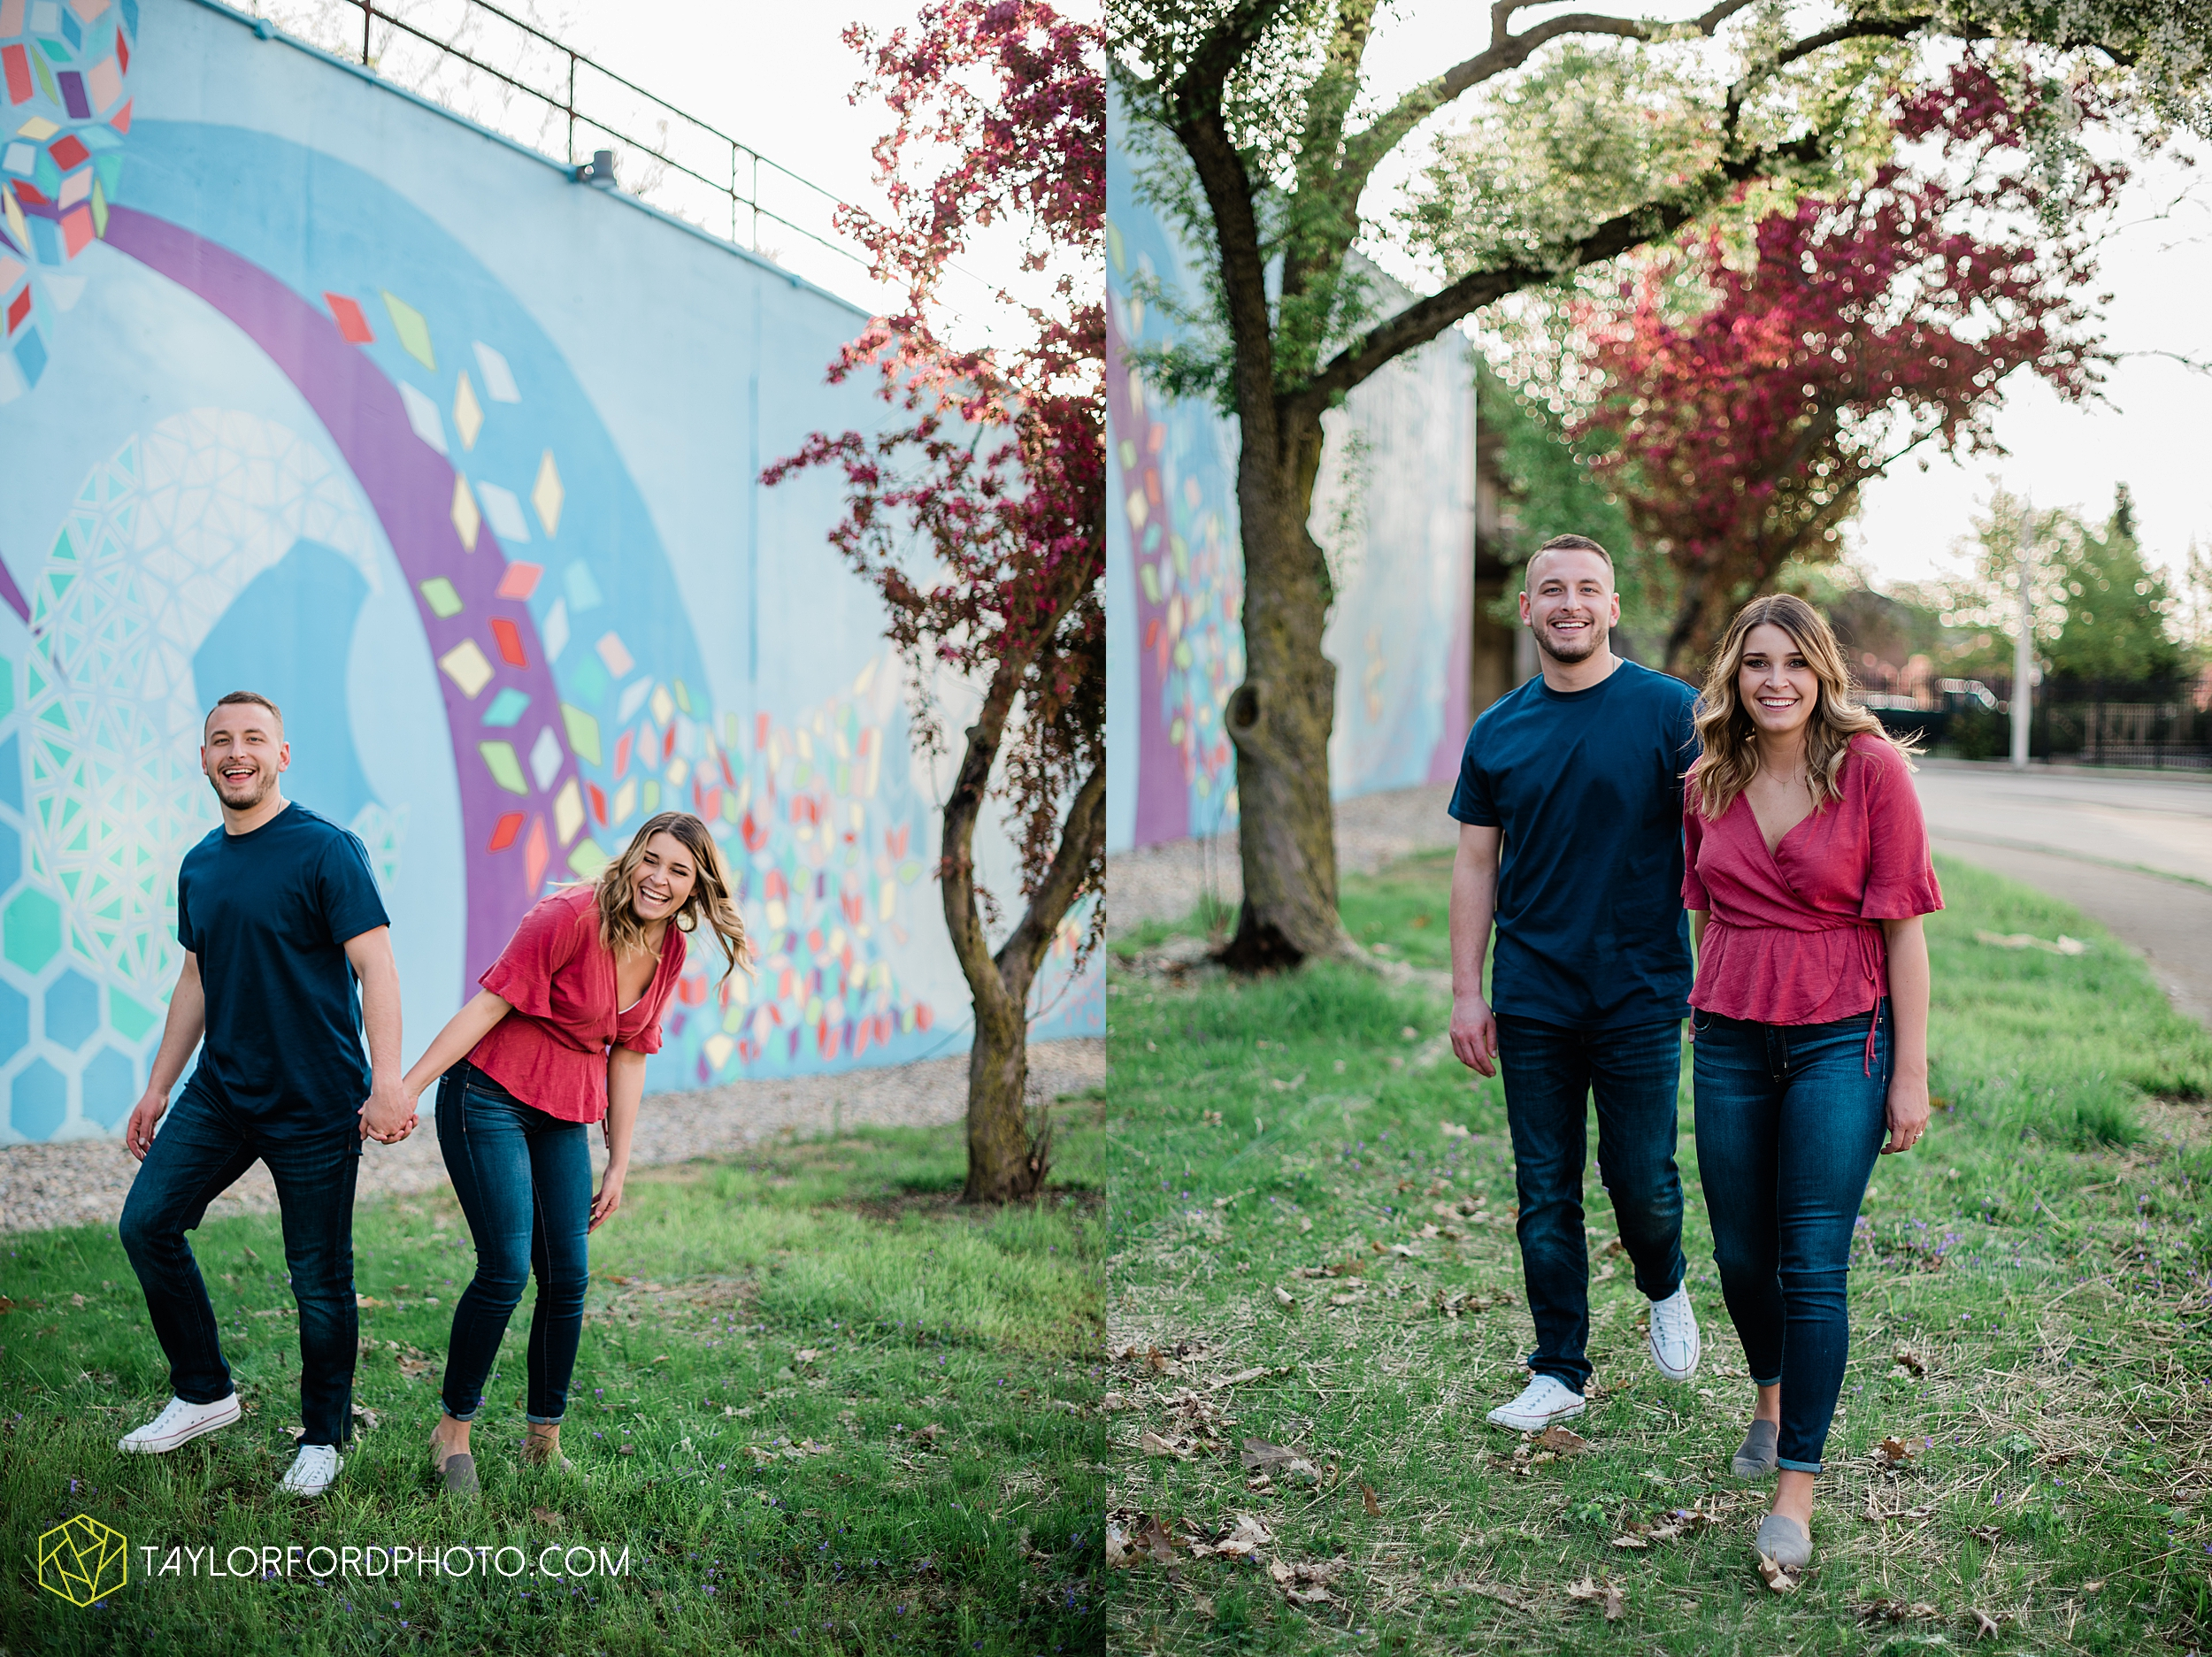 aly-taylor-downtown-fort-wayne-indiana-spring-engagement-photographer-photography-taylor-ford-hirschy-photographer_2596.jpg